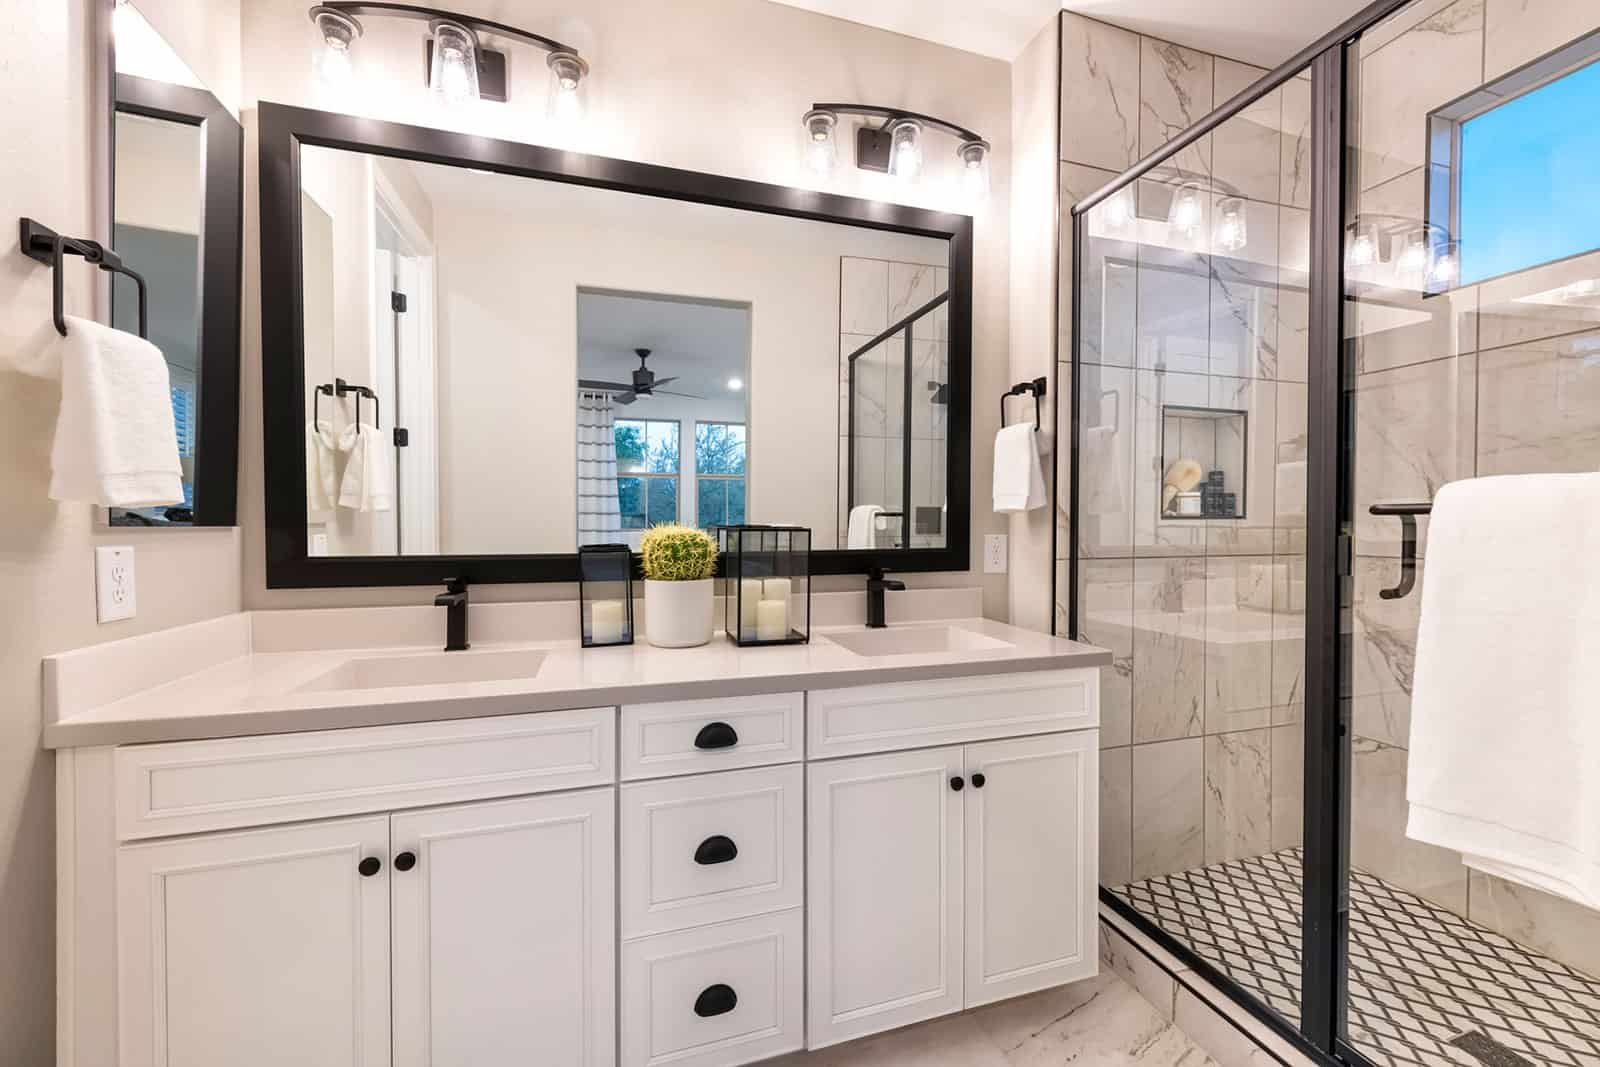 Bathroom featured in the Residence 4 By Tri Pointe Homes in Phoenix-Mesa, AZ